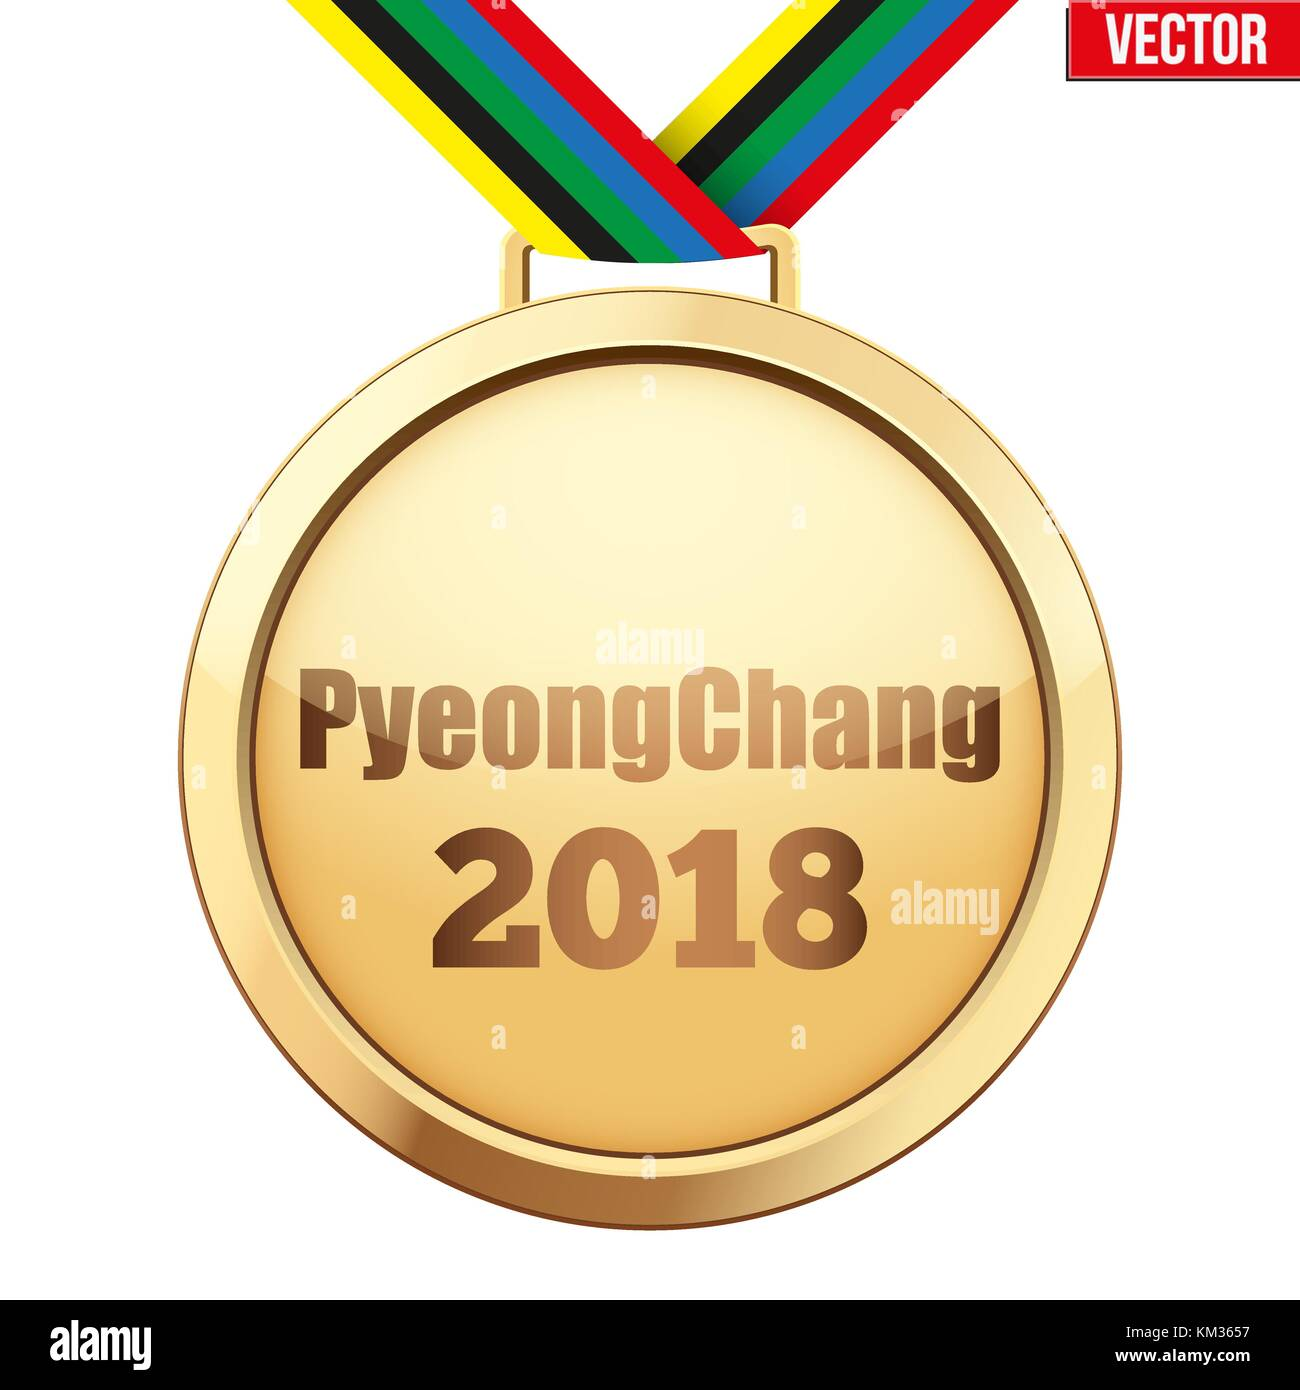 Gold medal with text PyeongChang 2018 - Stock Vector